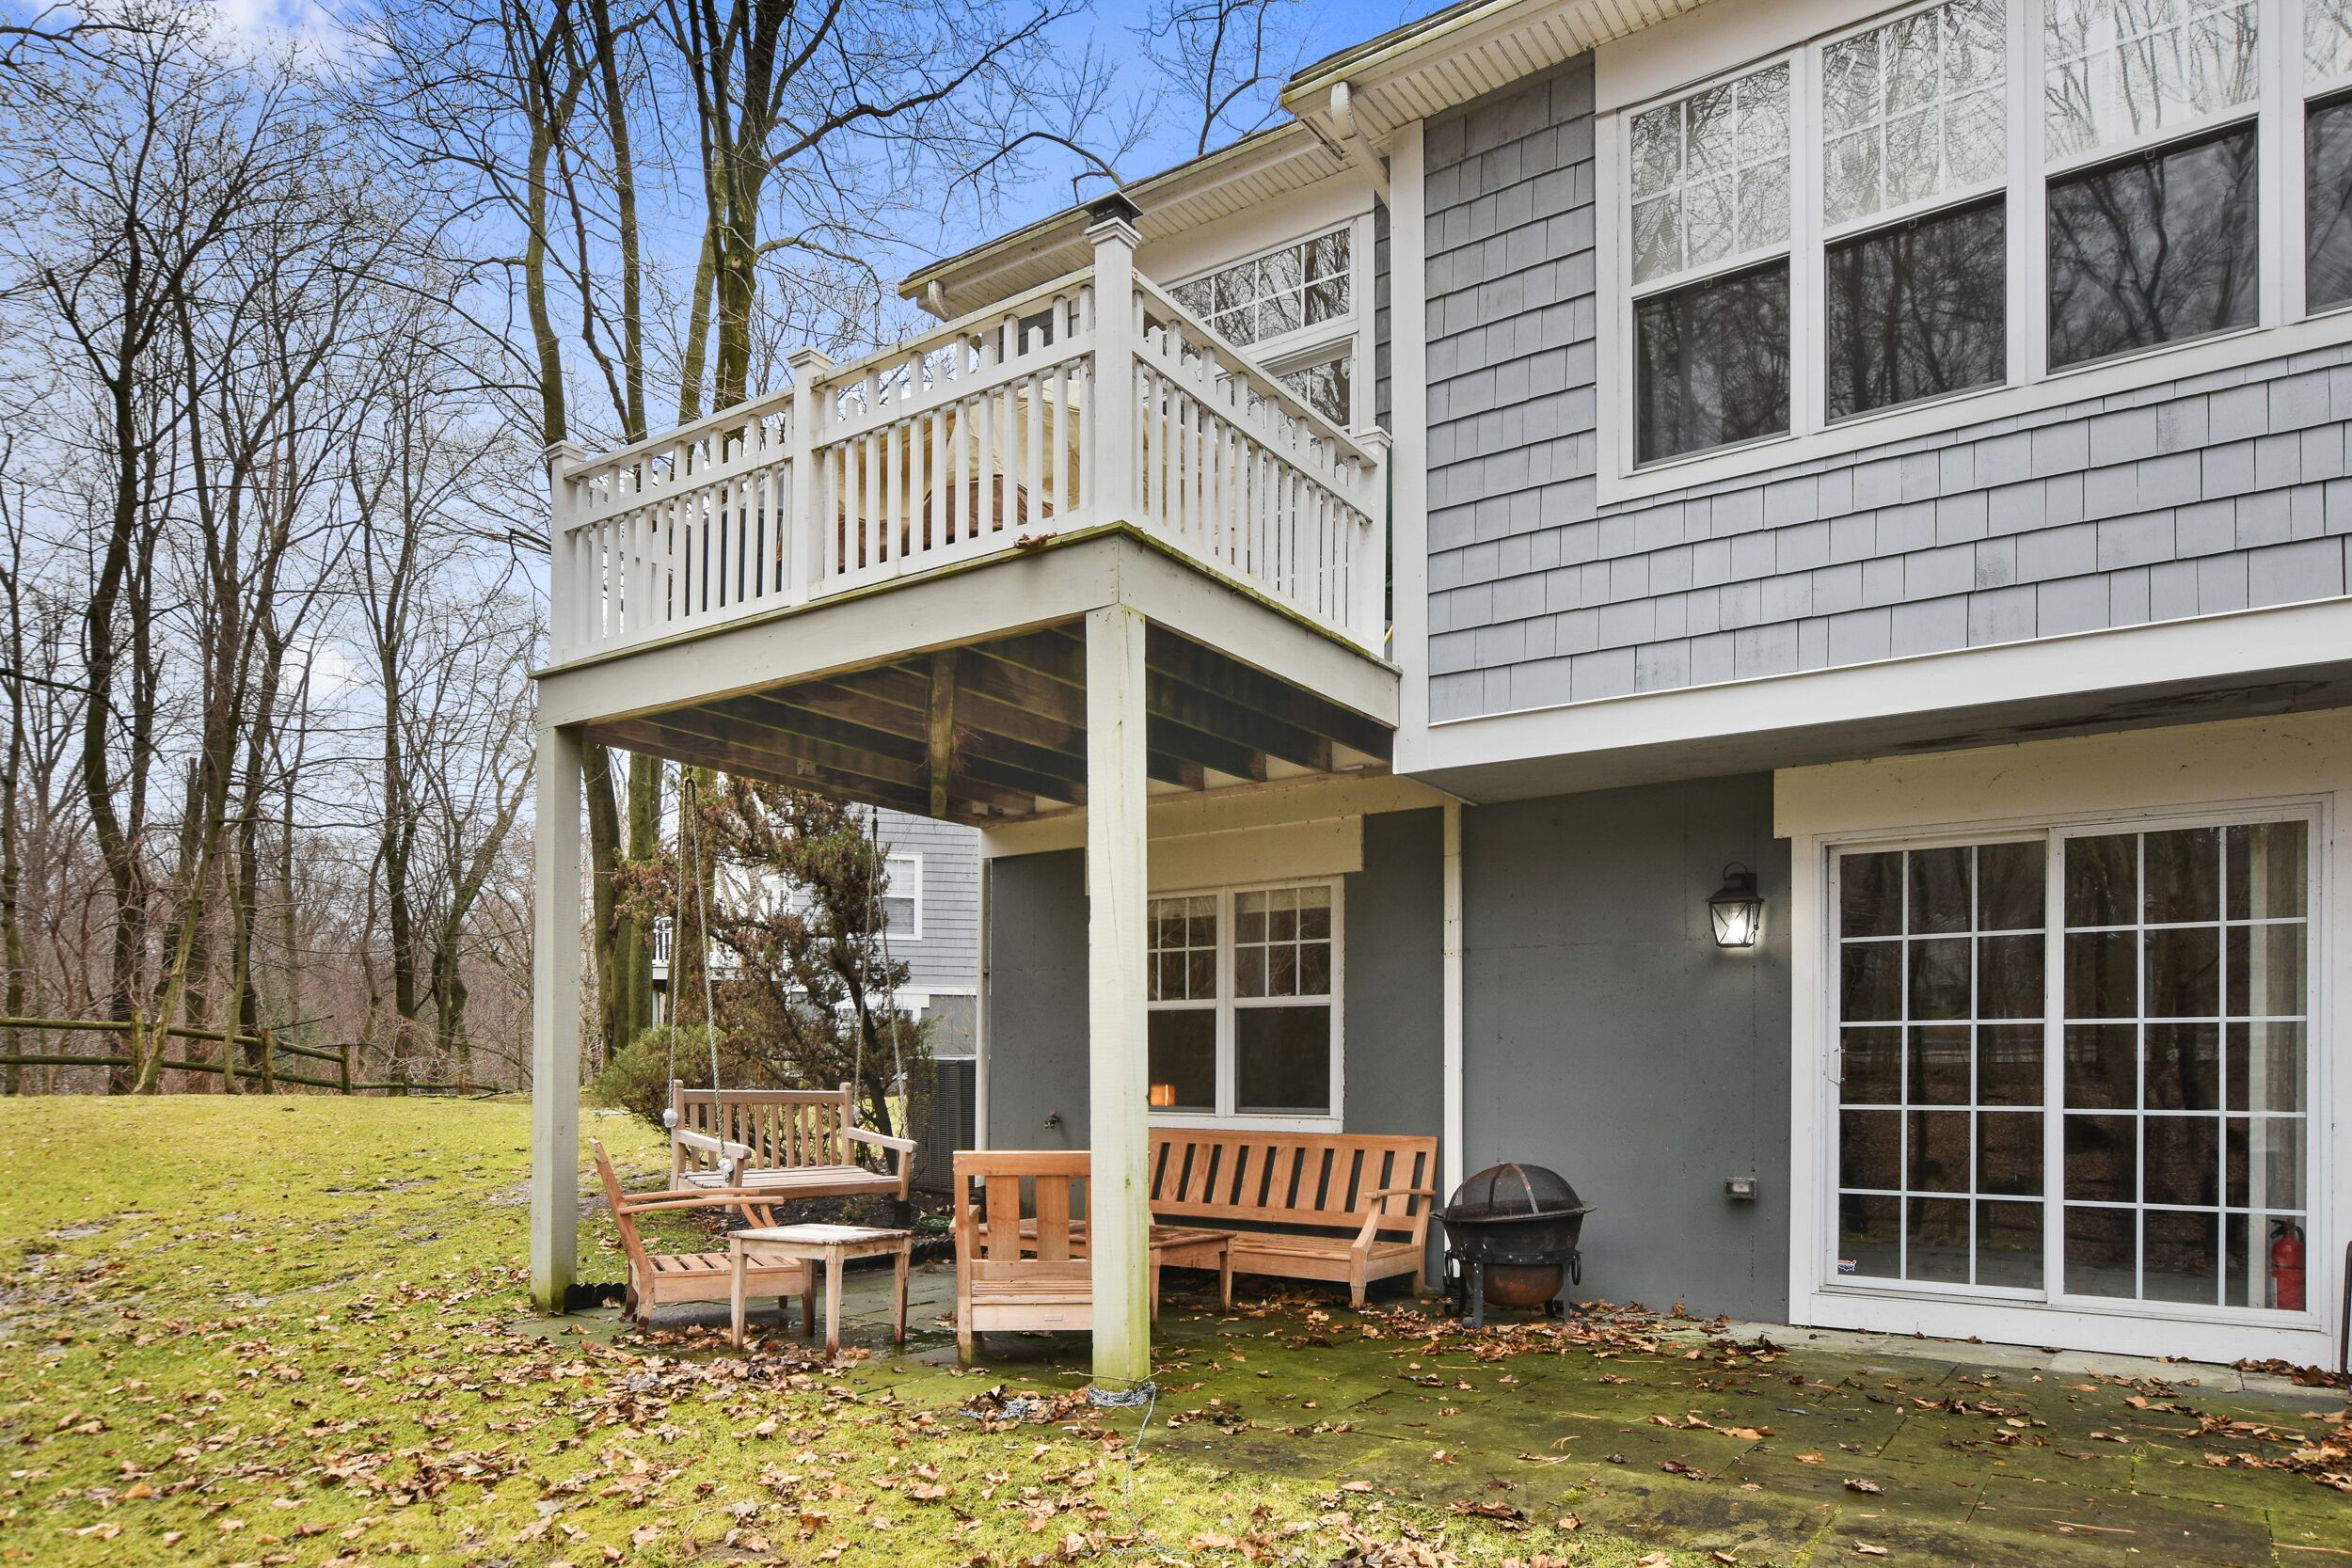 3 MYSTIC DR  OSSINING  LIST PRICE $659,000  SOLD PRICE $650,000  SOLD ON 05/15/19